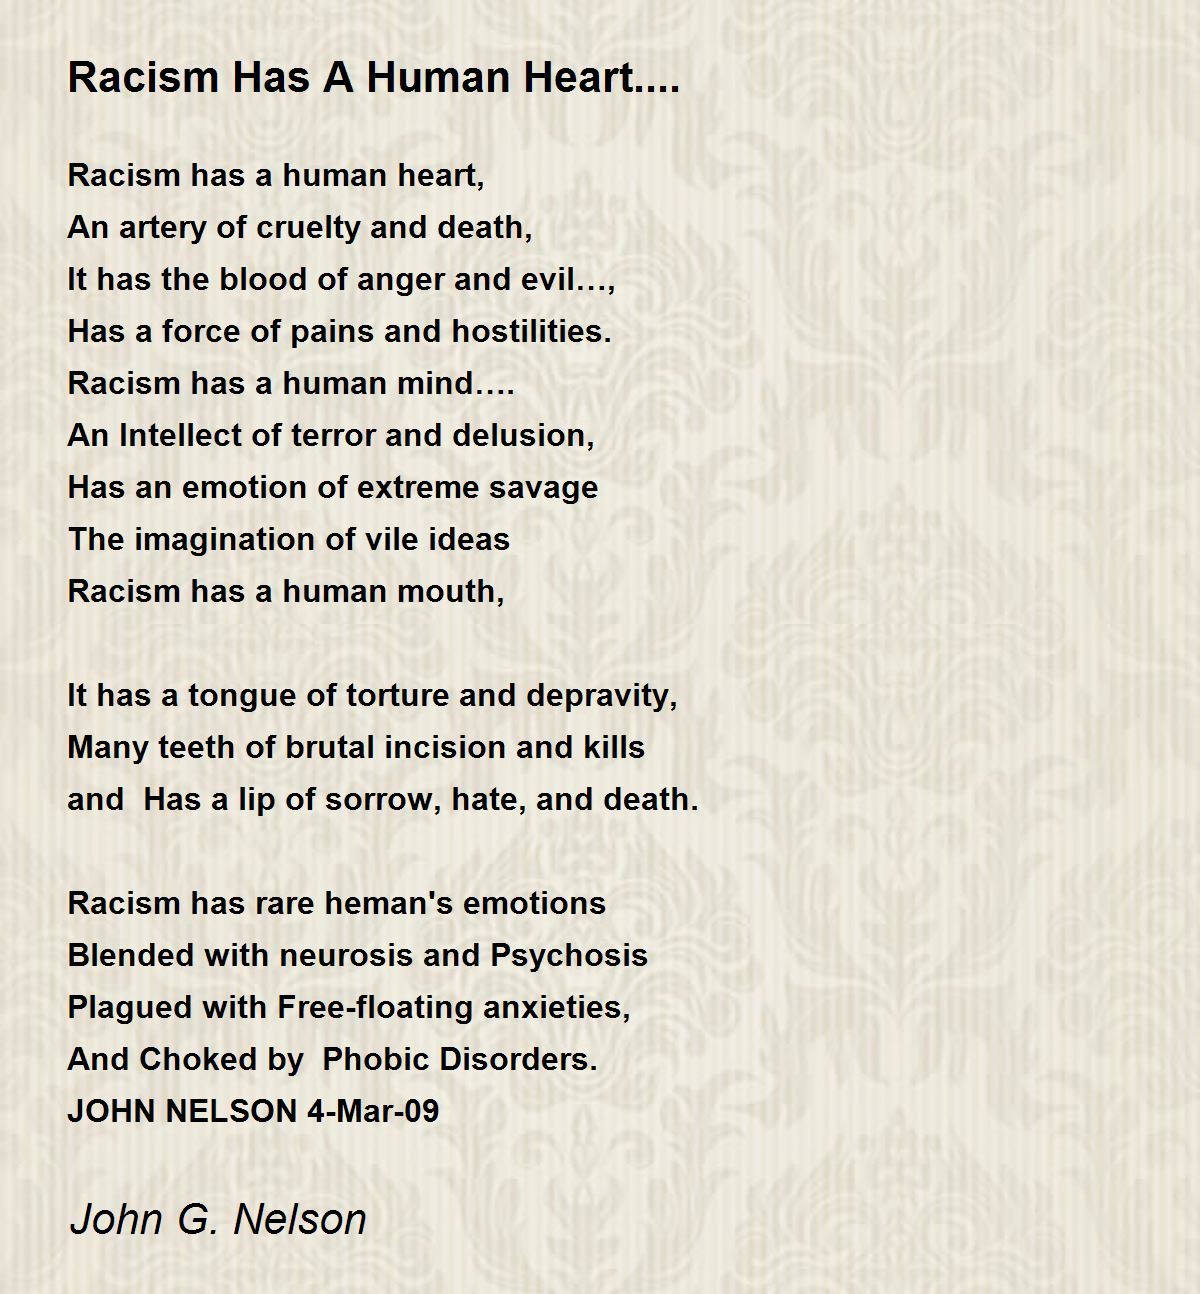 Racism Has A Human Heart.... Poem by John G. Nelson - Poem Hunter